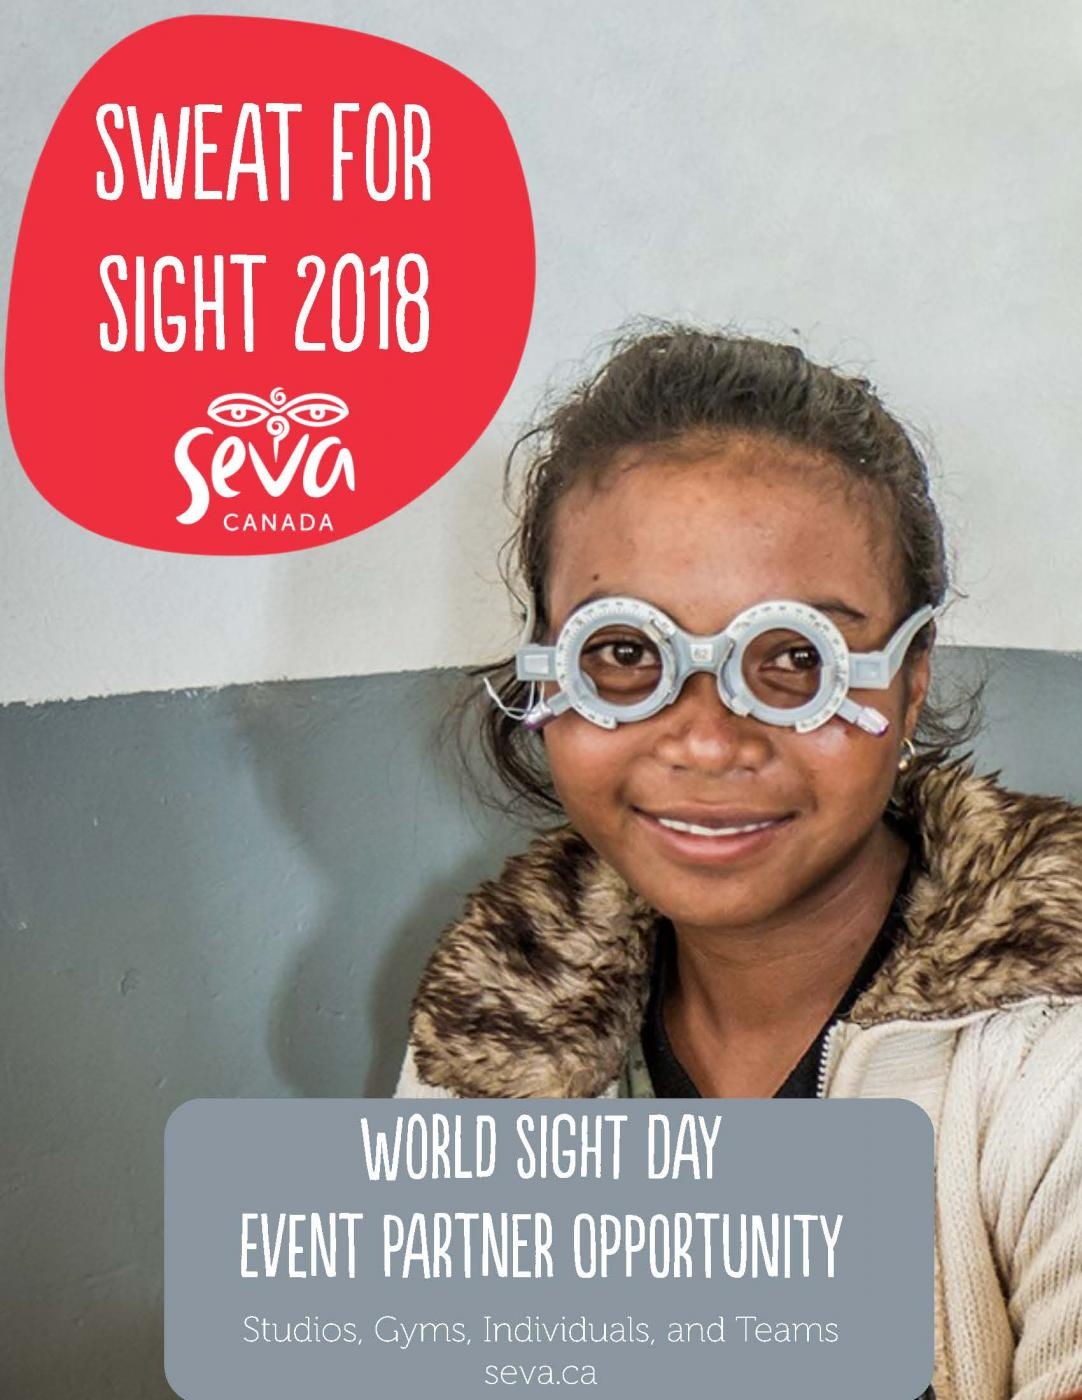 2018 Sweat for Sight Information Package Cover Image